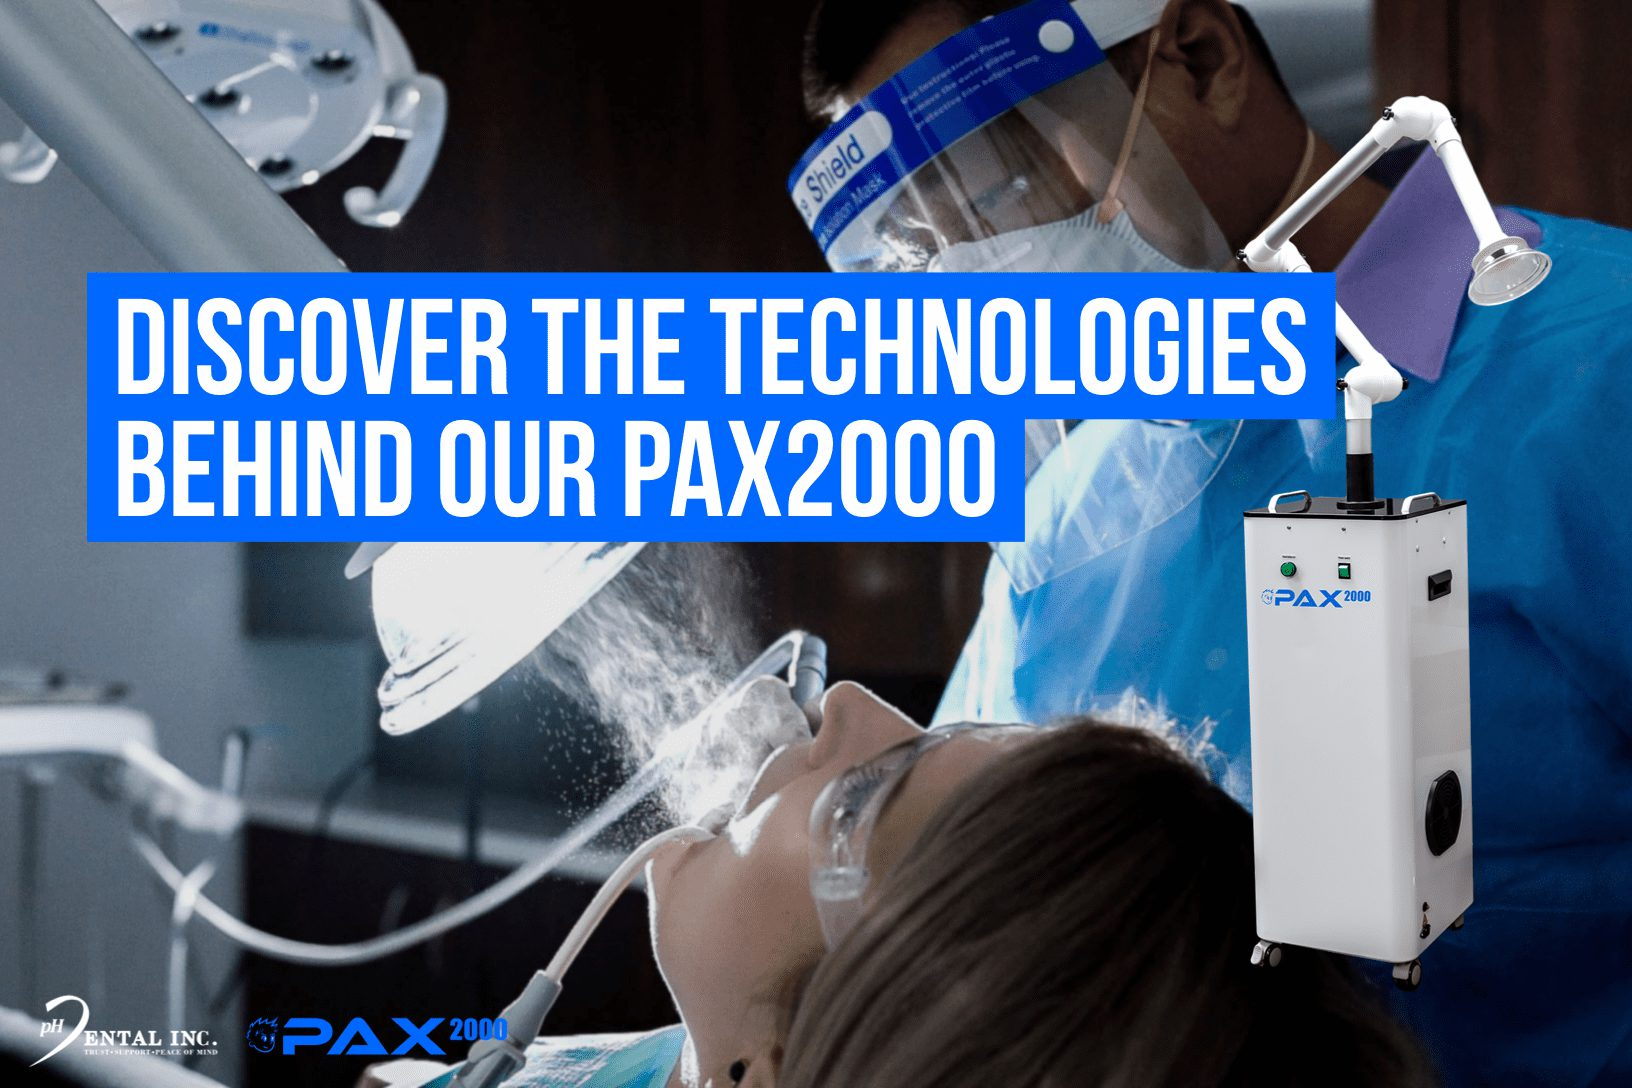 discover the technologies behind our pax2000 featured image